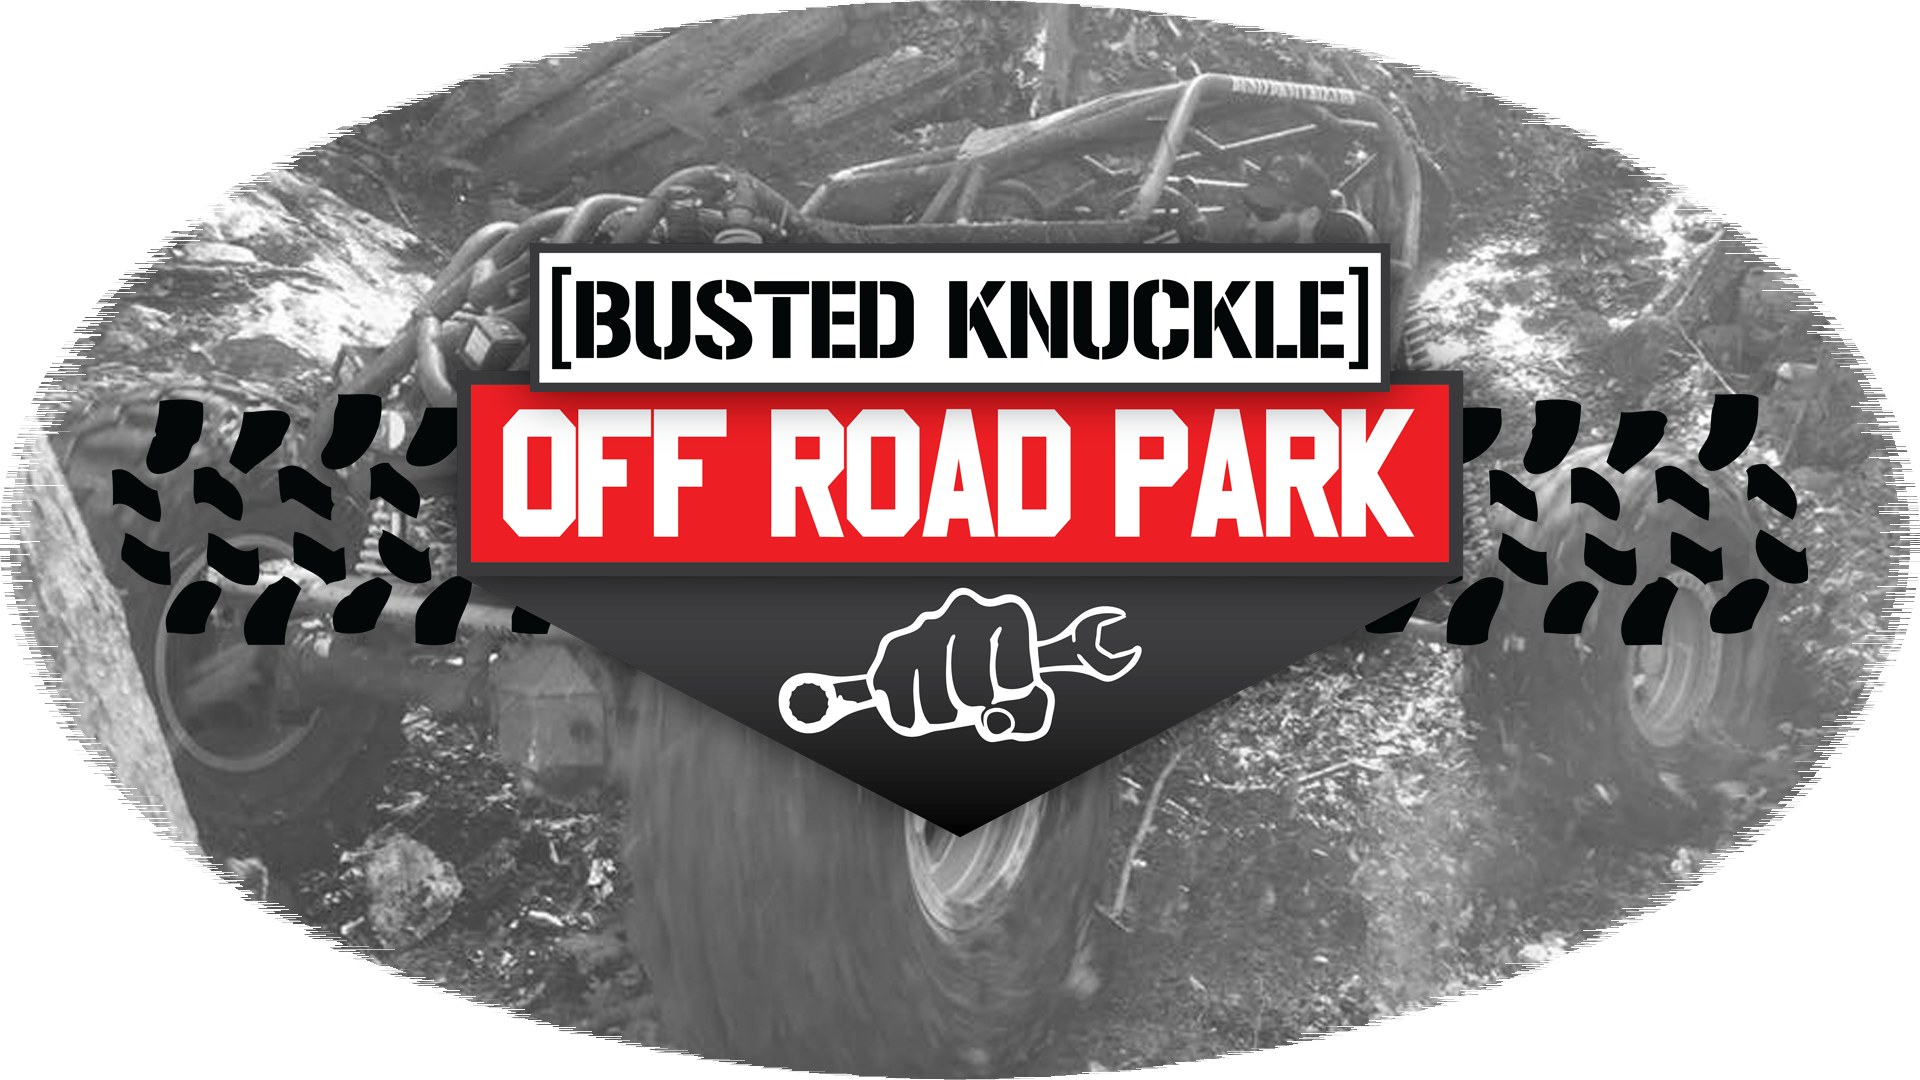 Busted Knuckle Off Road Park